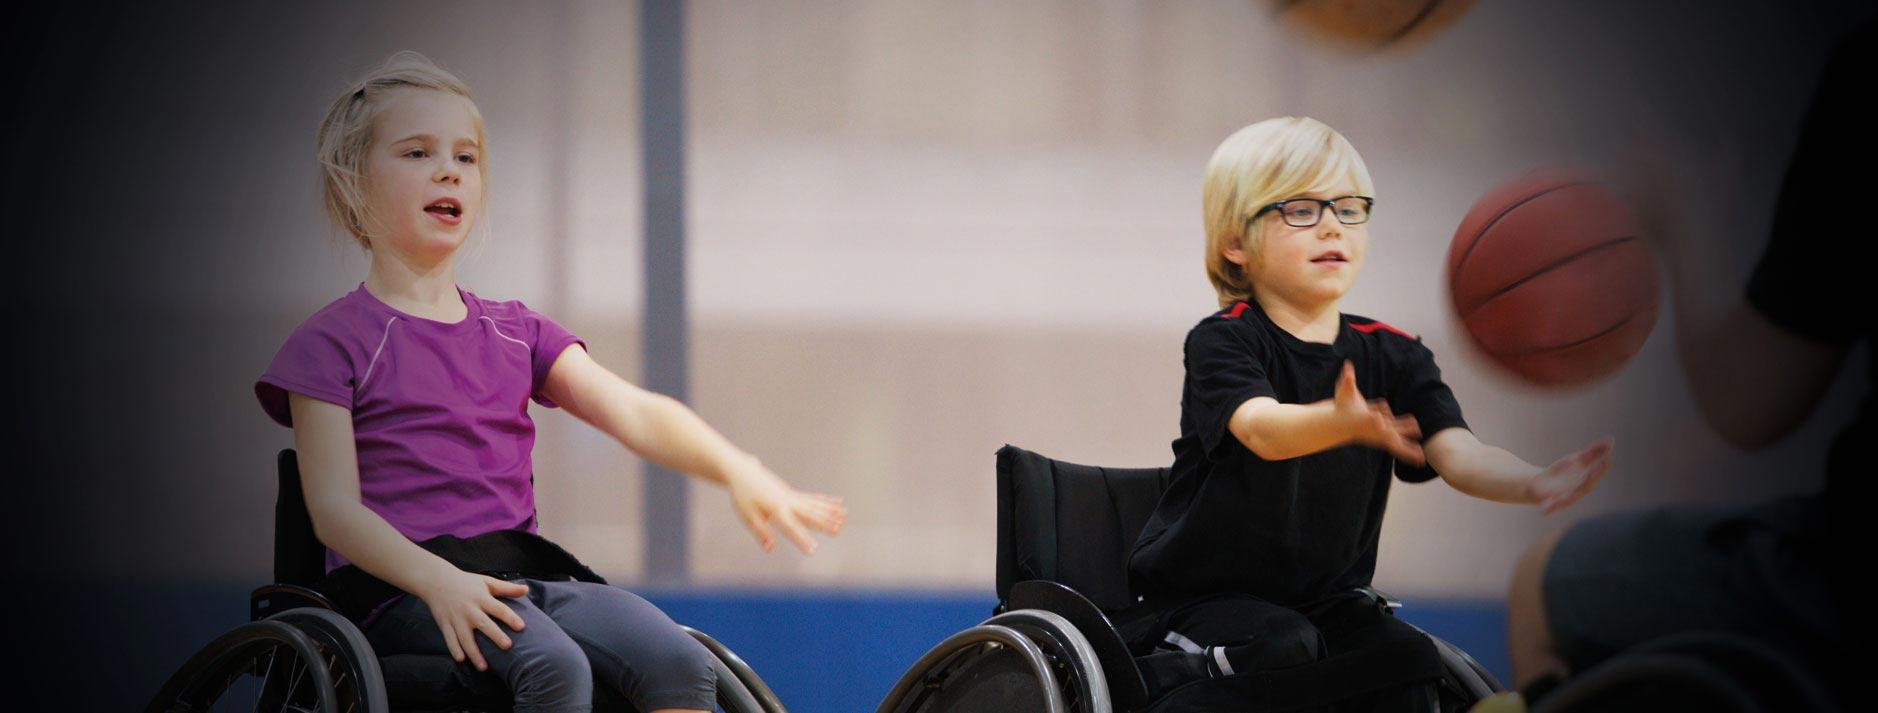 Kids playing wheelchair basketball